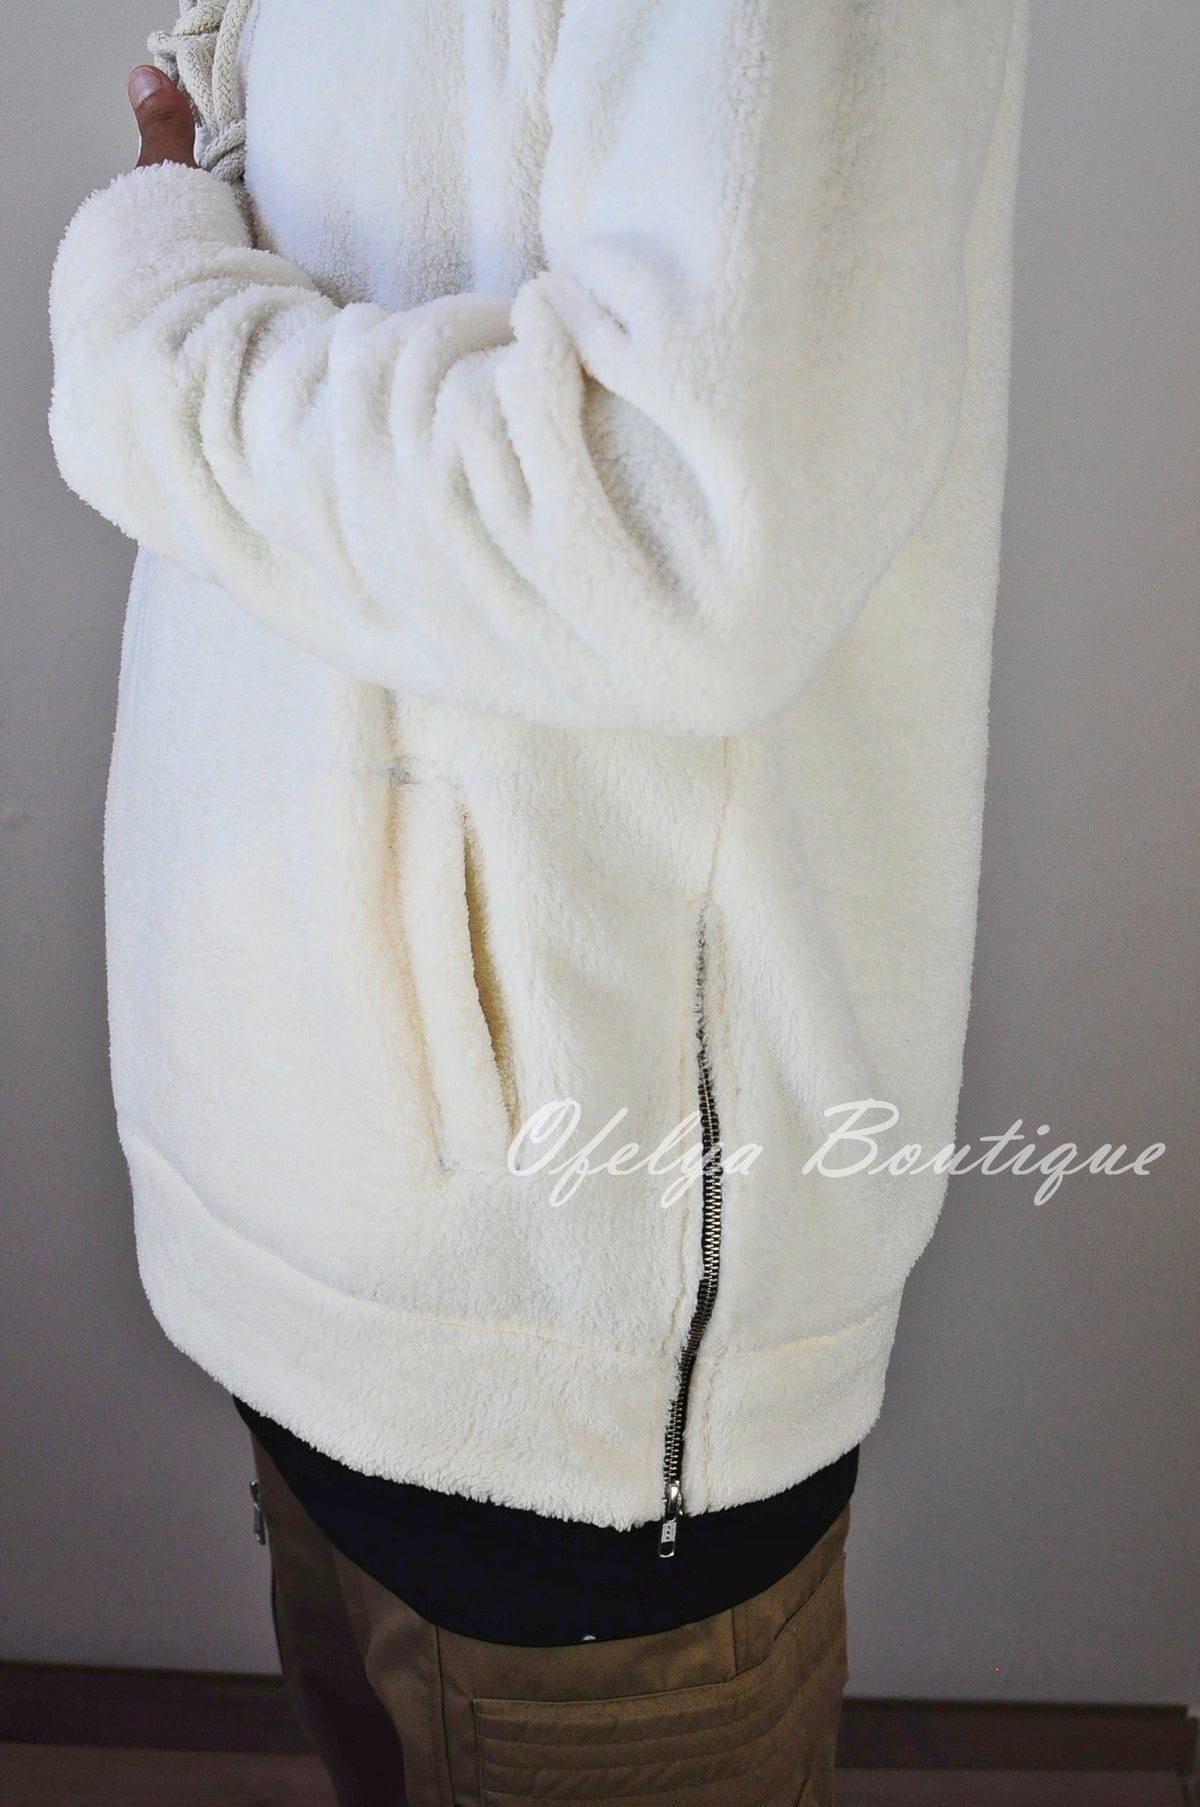 Raf Bubble Furry Side YKK Zip-up Hoodie  Zipper Warm Sherling Sweatshirt Winter